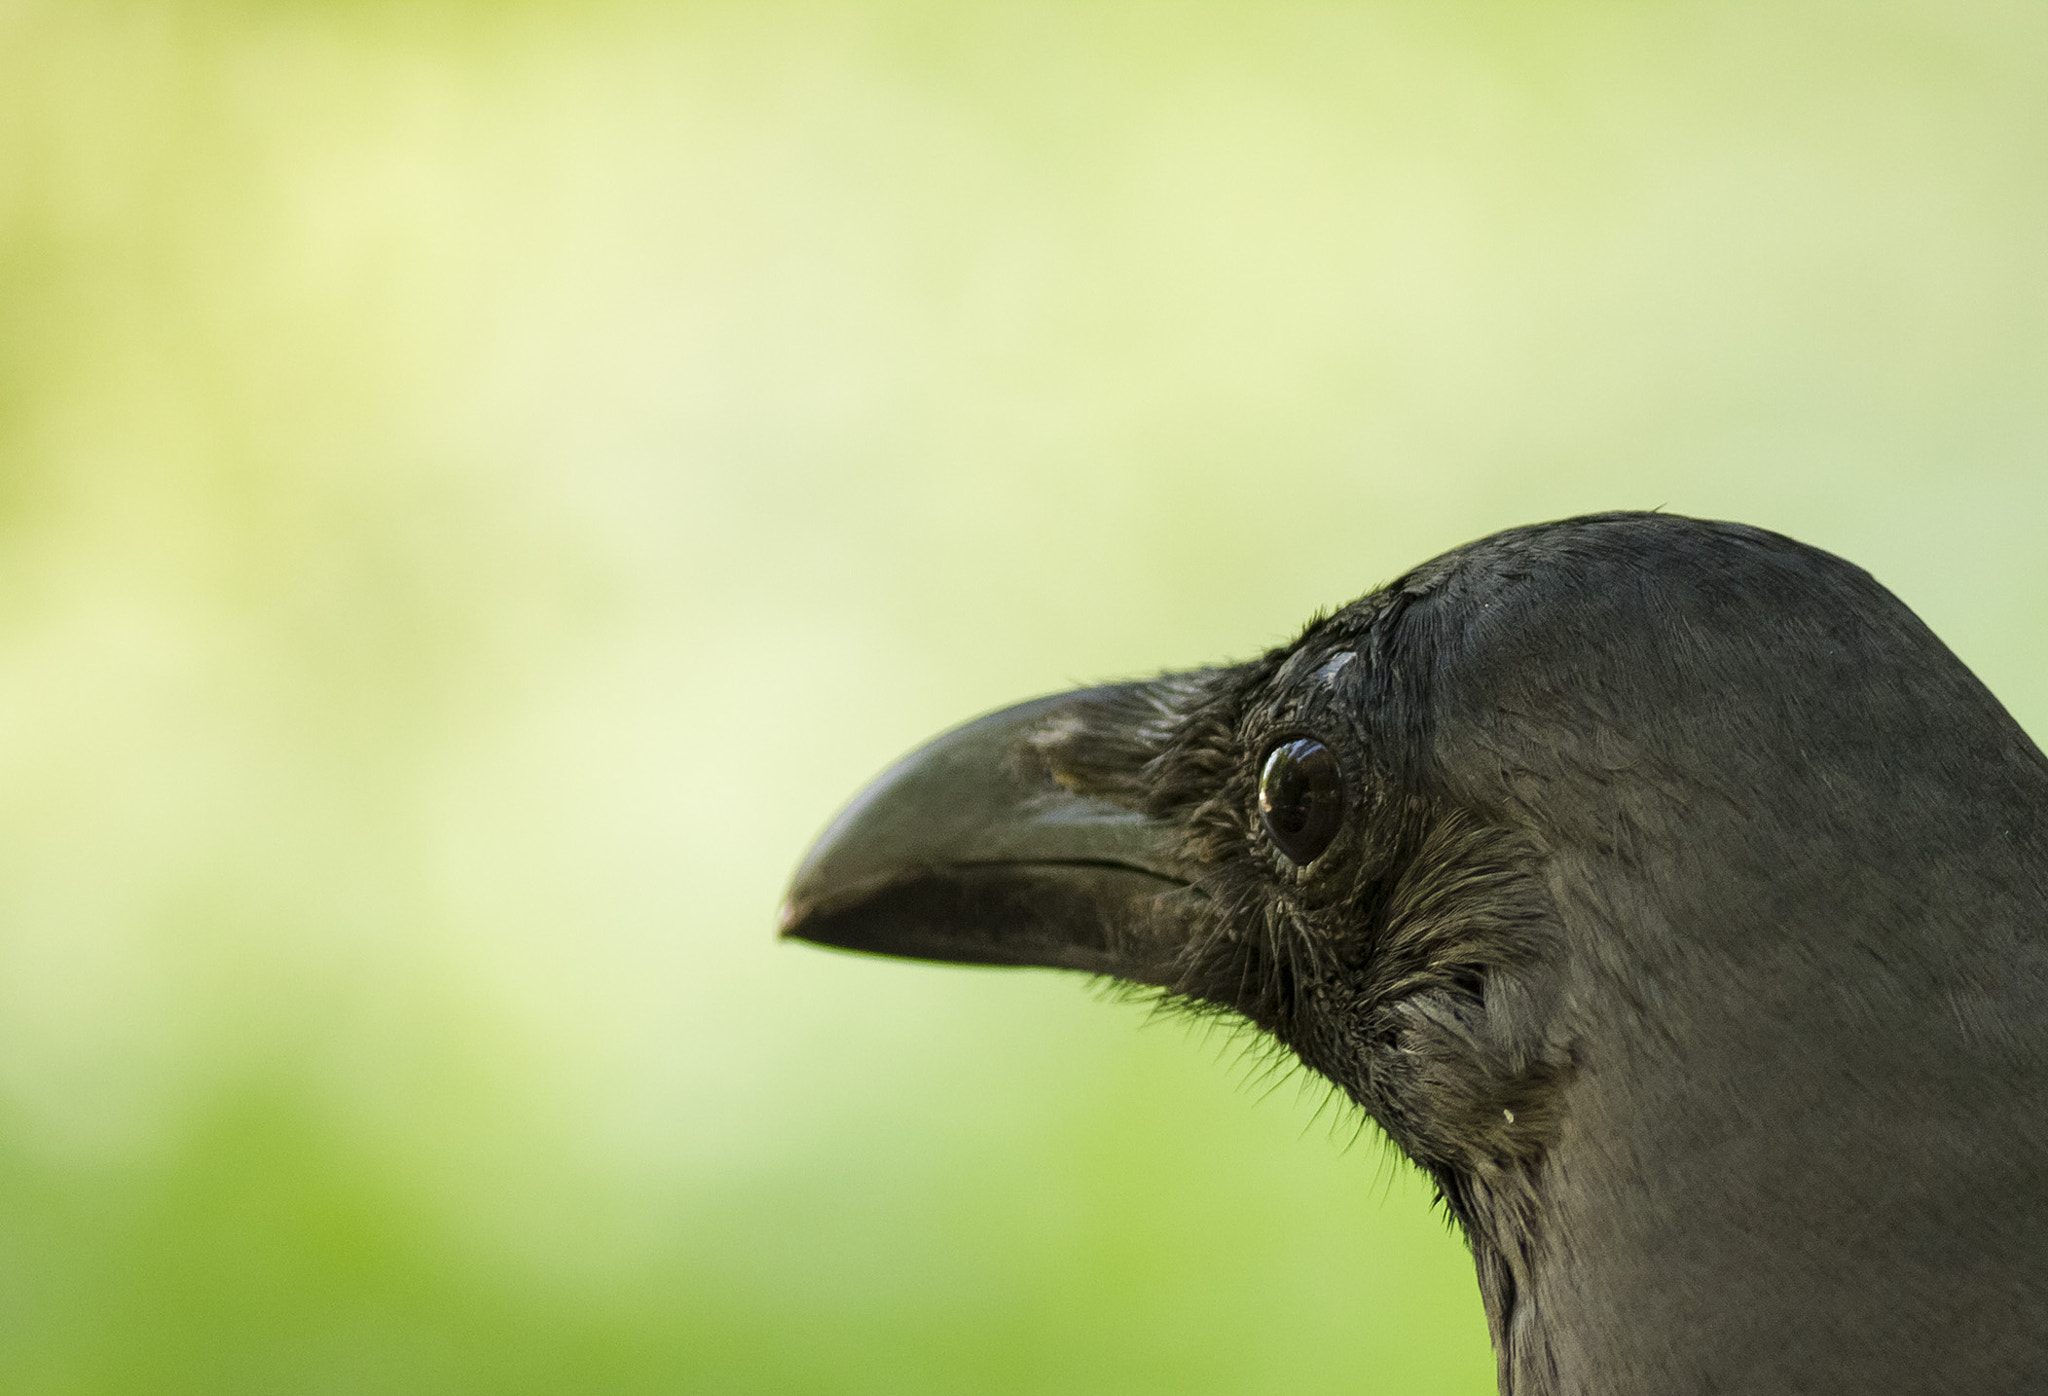 Photograph Crow eye shot by Akshay Khare on 500px